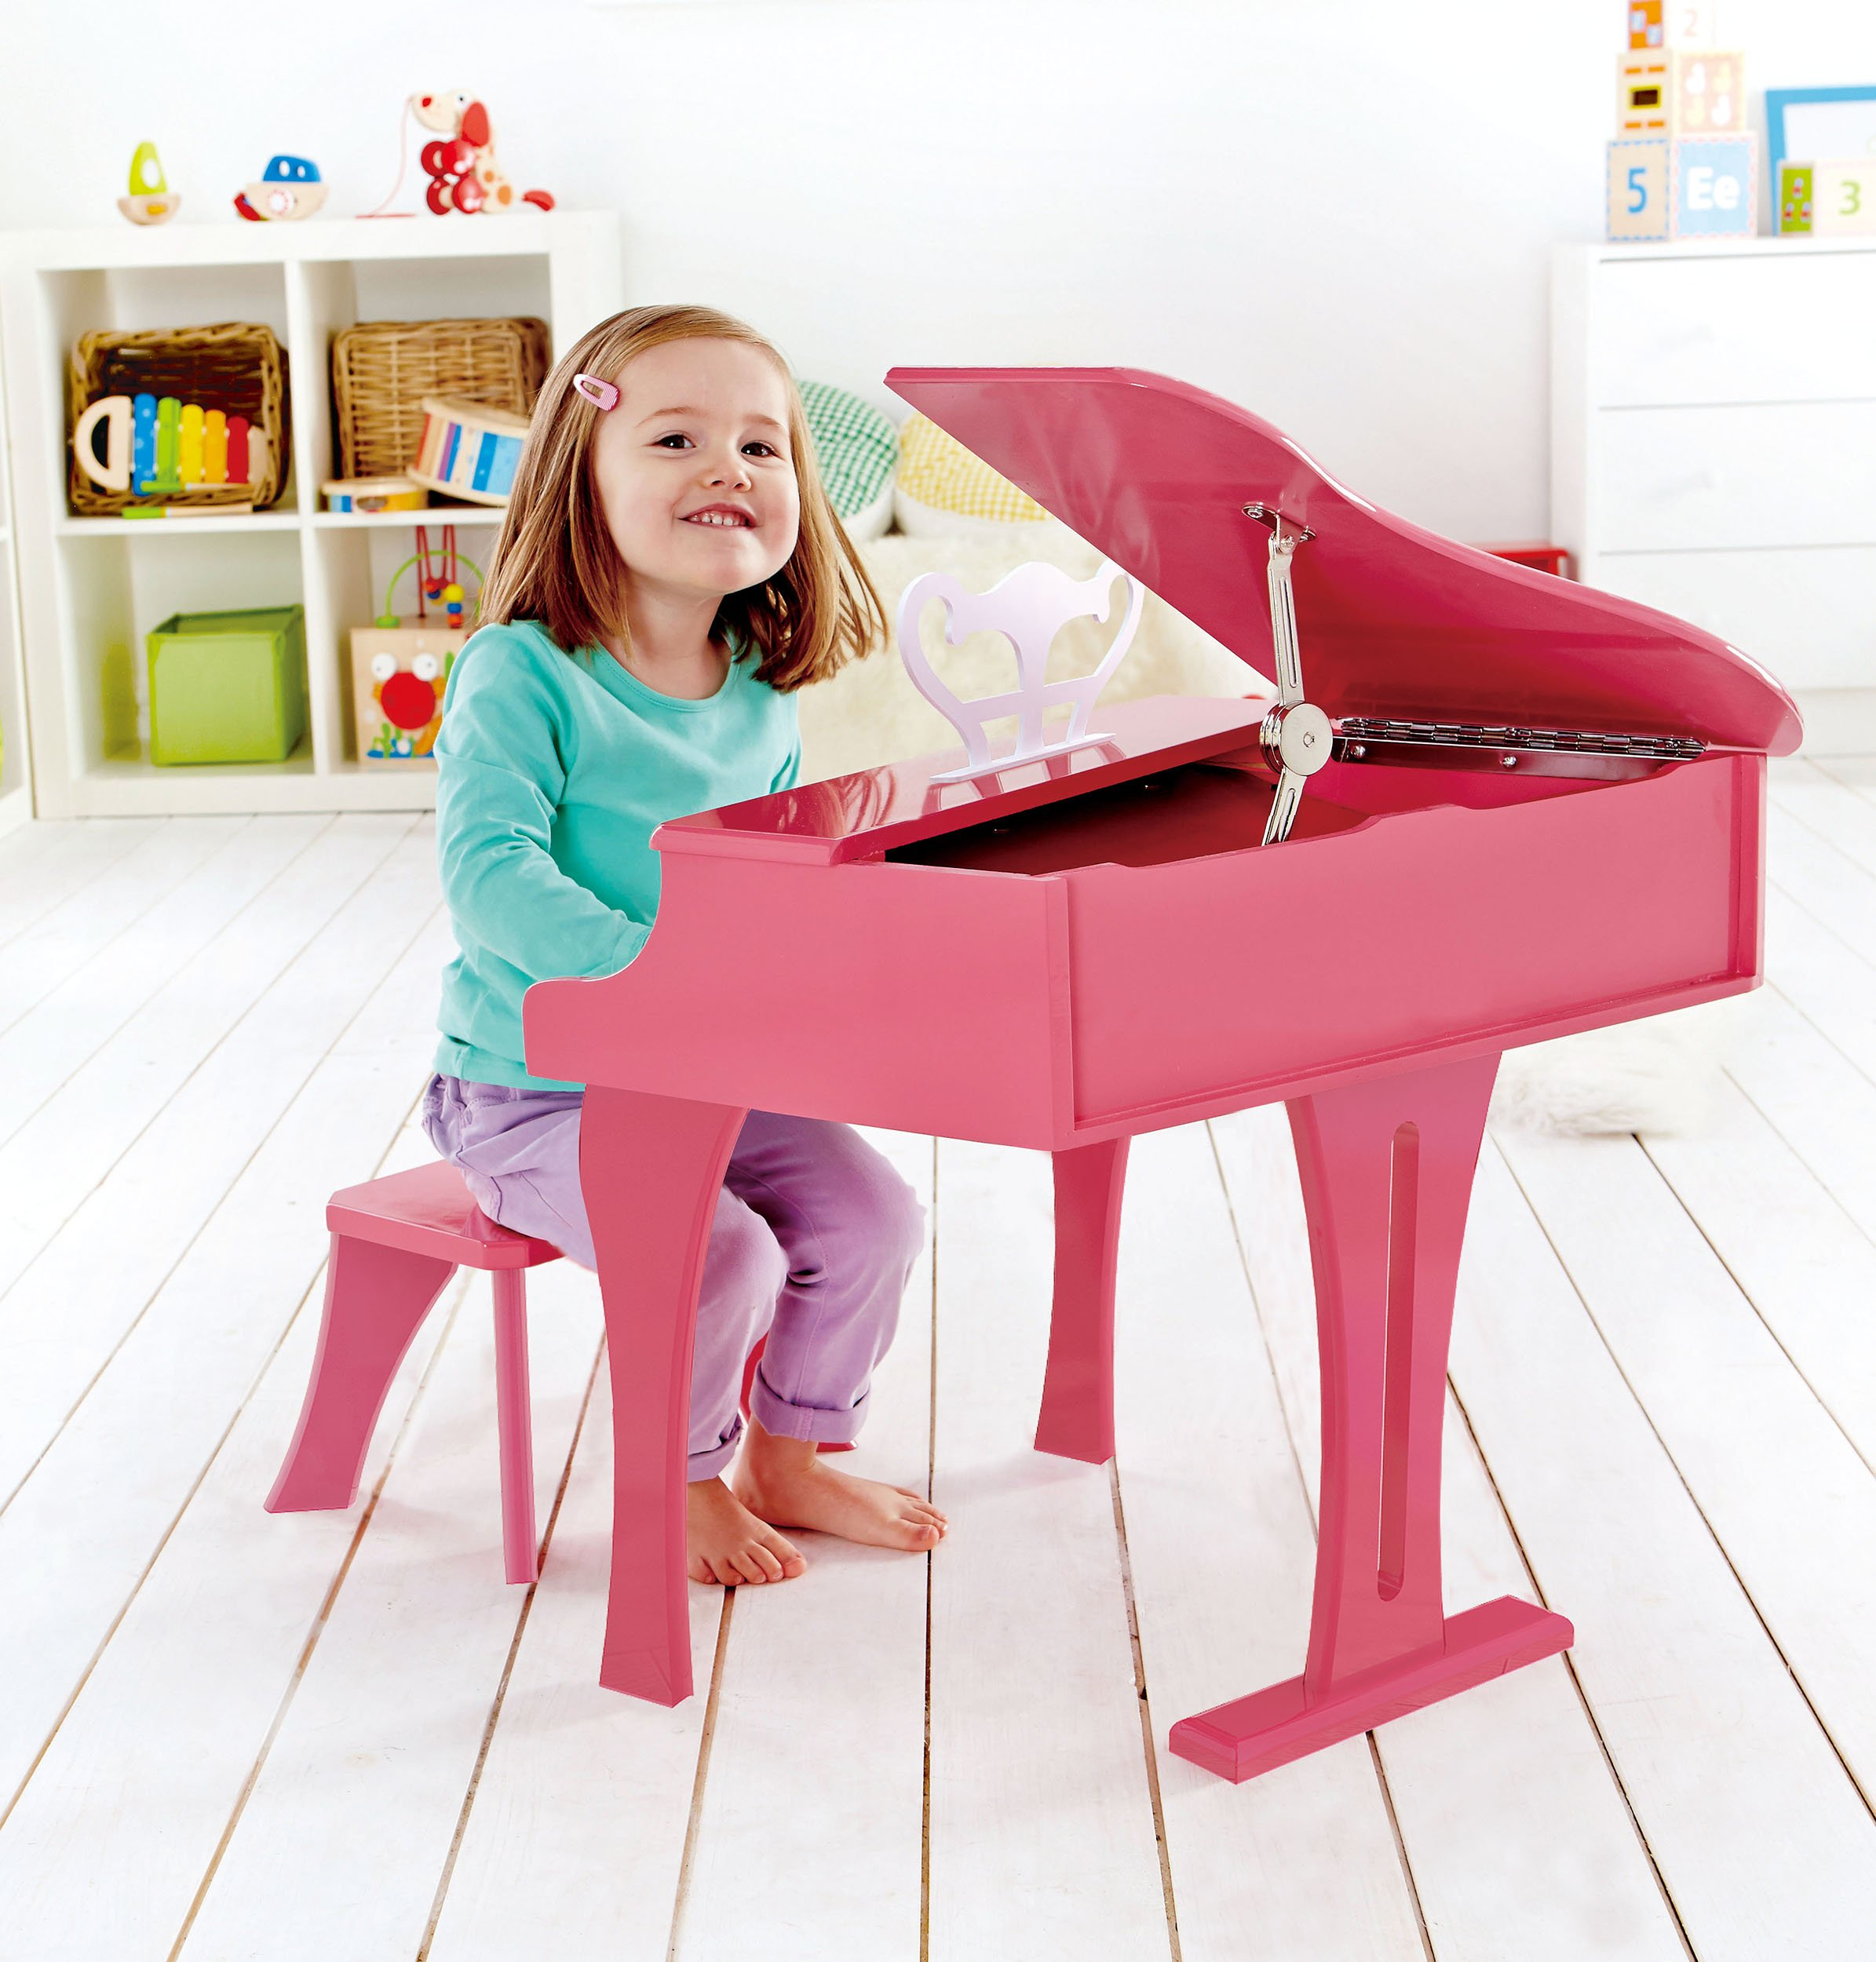 Hape Happy Grand Piano in Pink Toddler Wooden Musical Instrument by Hape (Image #2)